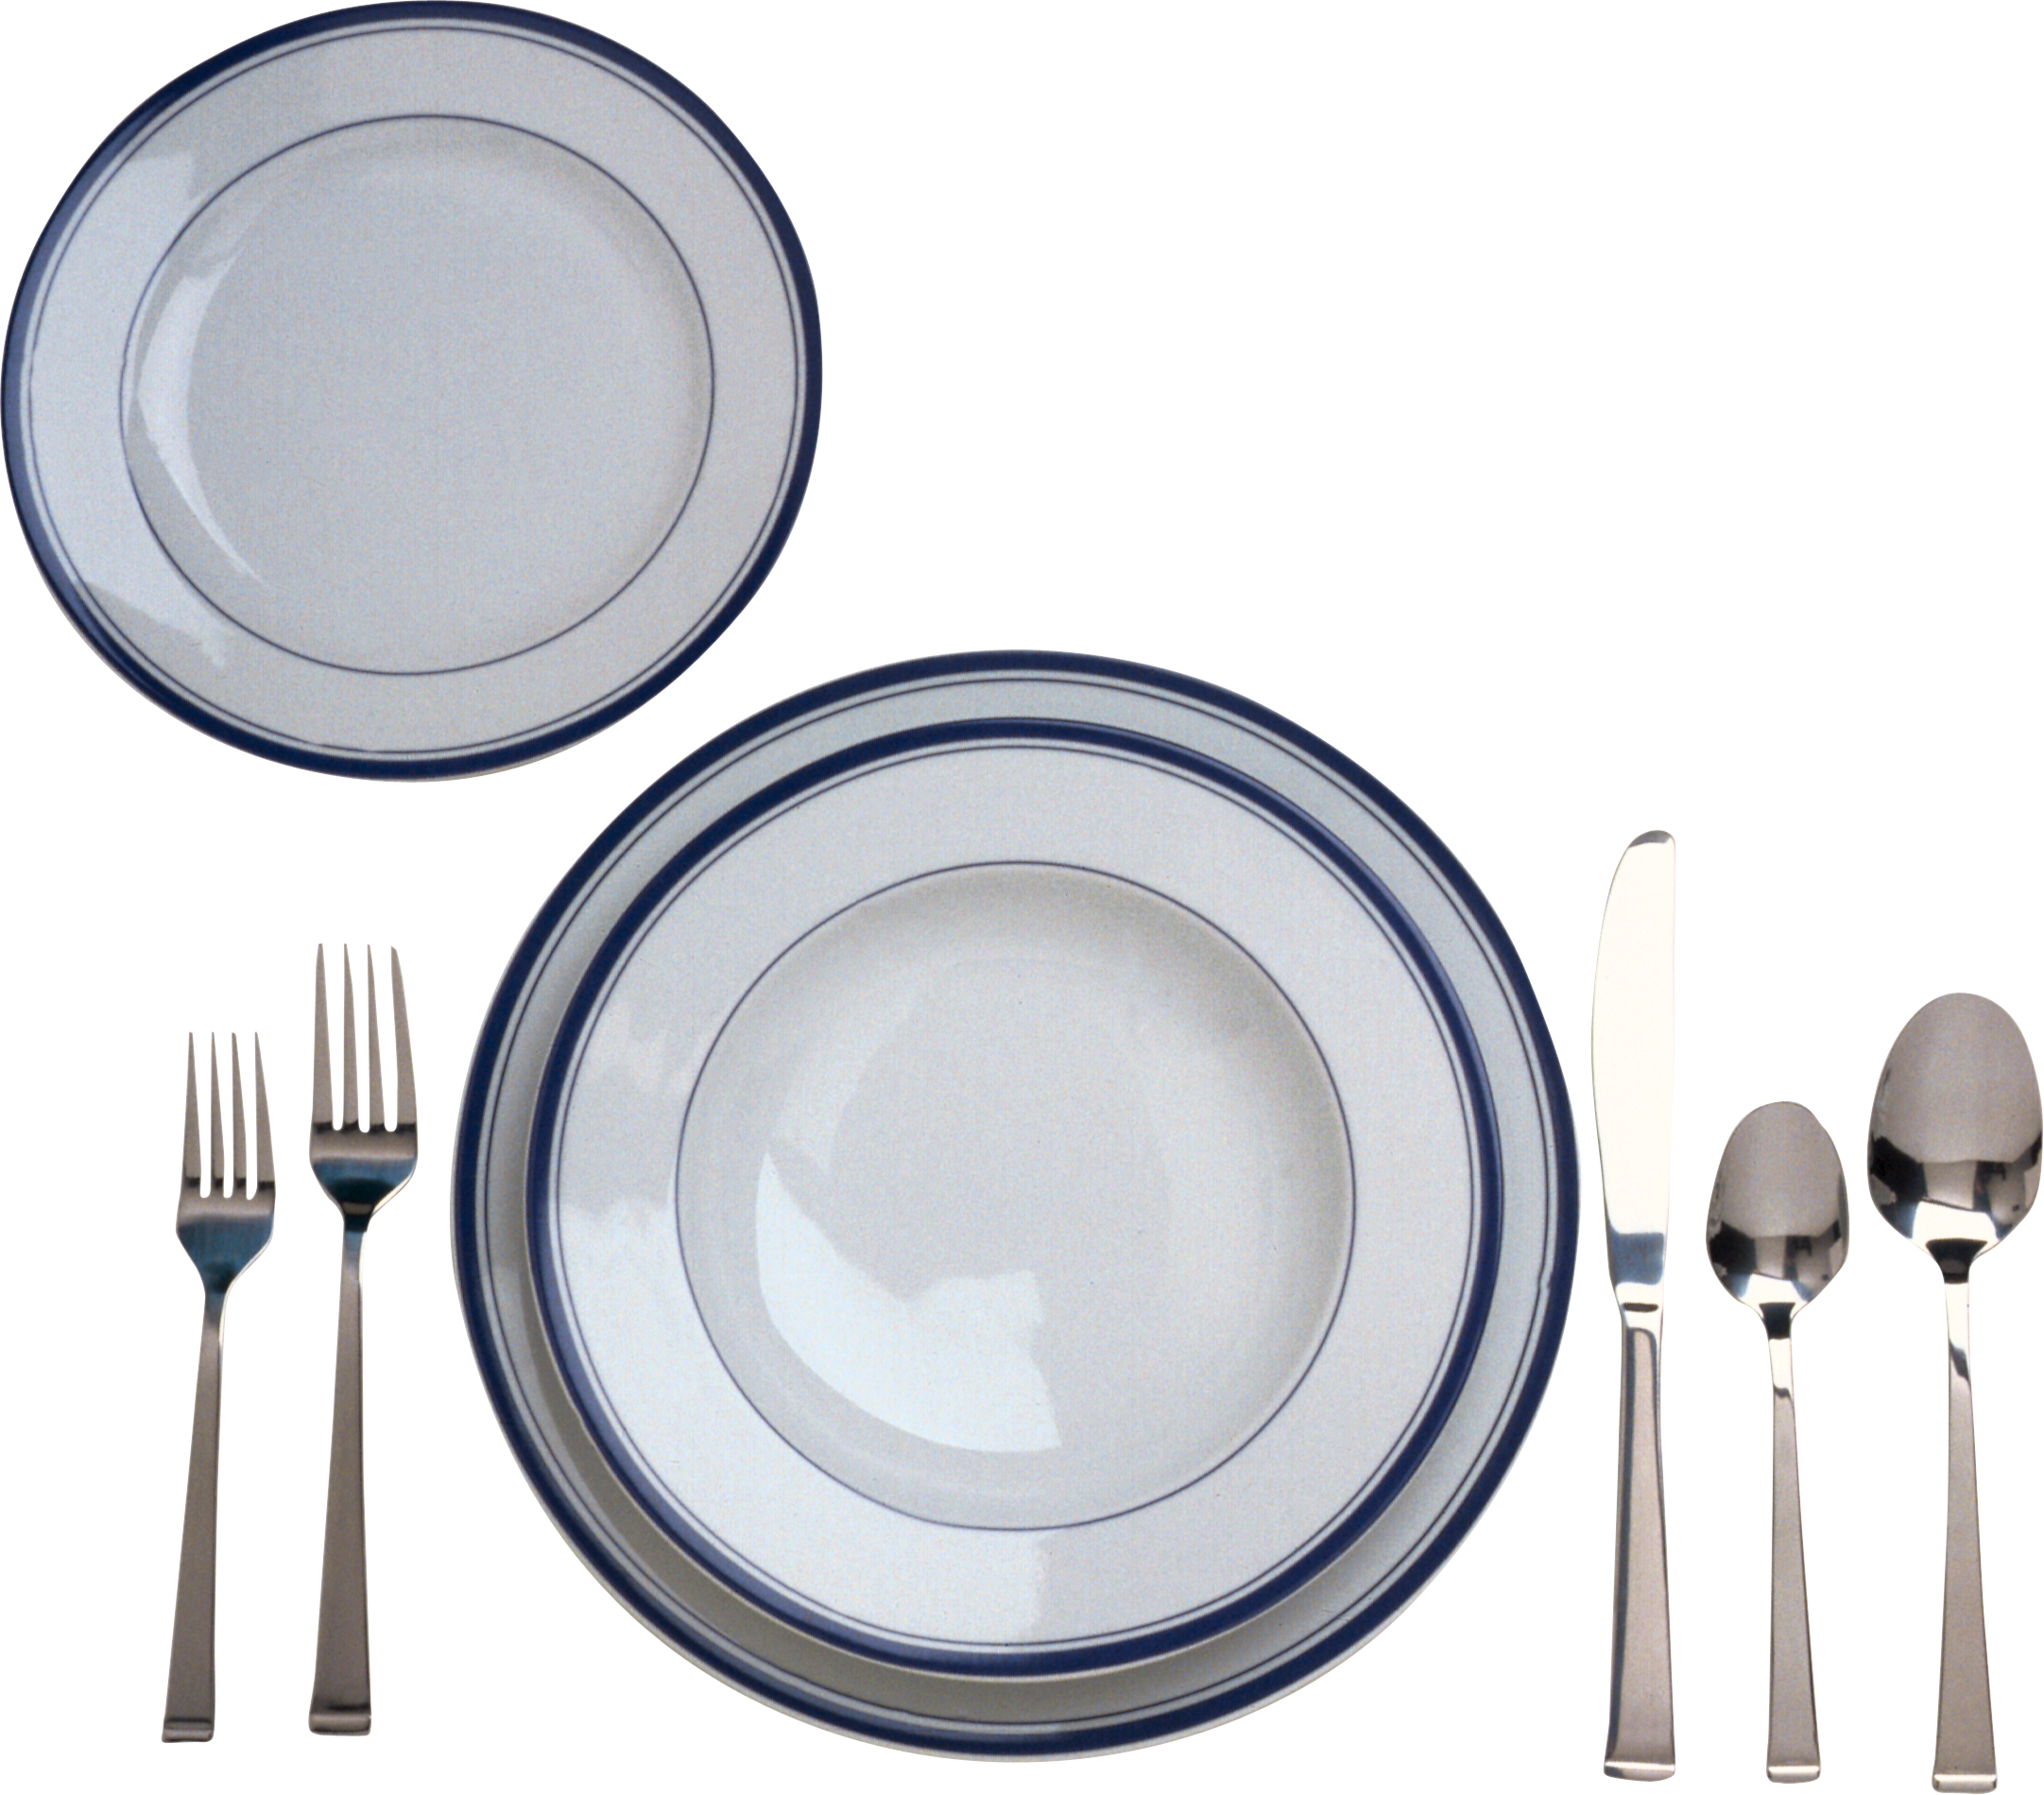 Clipart kitchen crockery. Plates png photo images